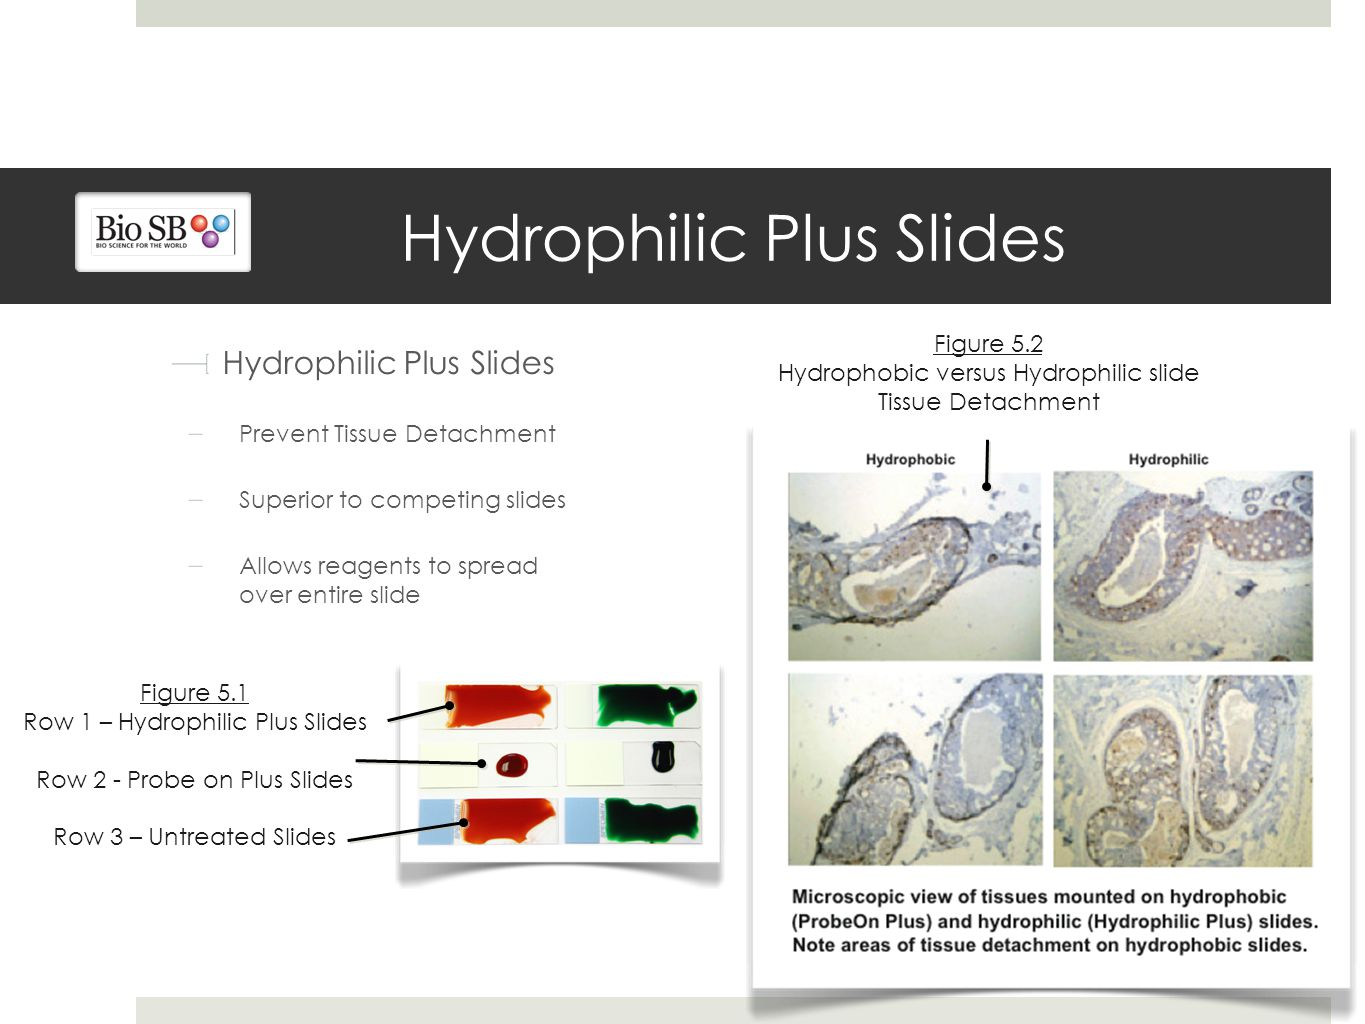 Hydrophilic Plus Slides Prevent Tissue Detachment Superior to competing slides Allows reagents to spread over entire slide Figure 5.1 Row 1 – Hydrophilic Plus Slides Row 2 - Probe on Plus Slides Row 3 – Untreated Slides Figure 5.2 Hydrophobic versus Hydrophilic slide Tissue Detachment